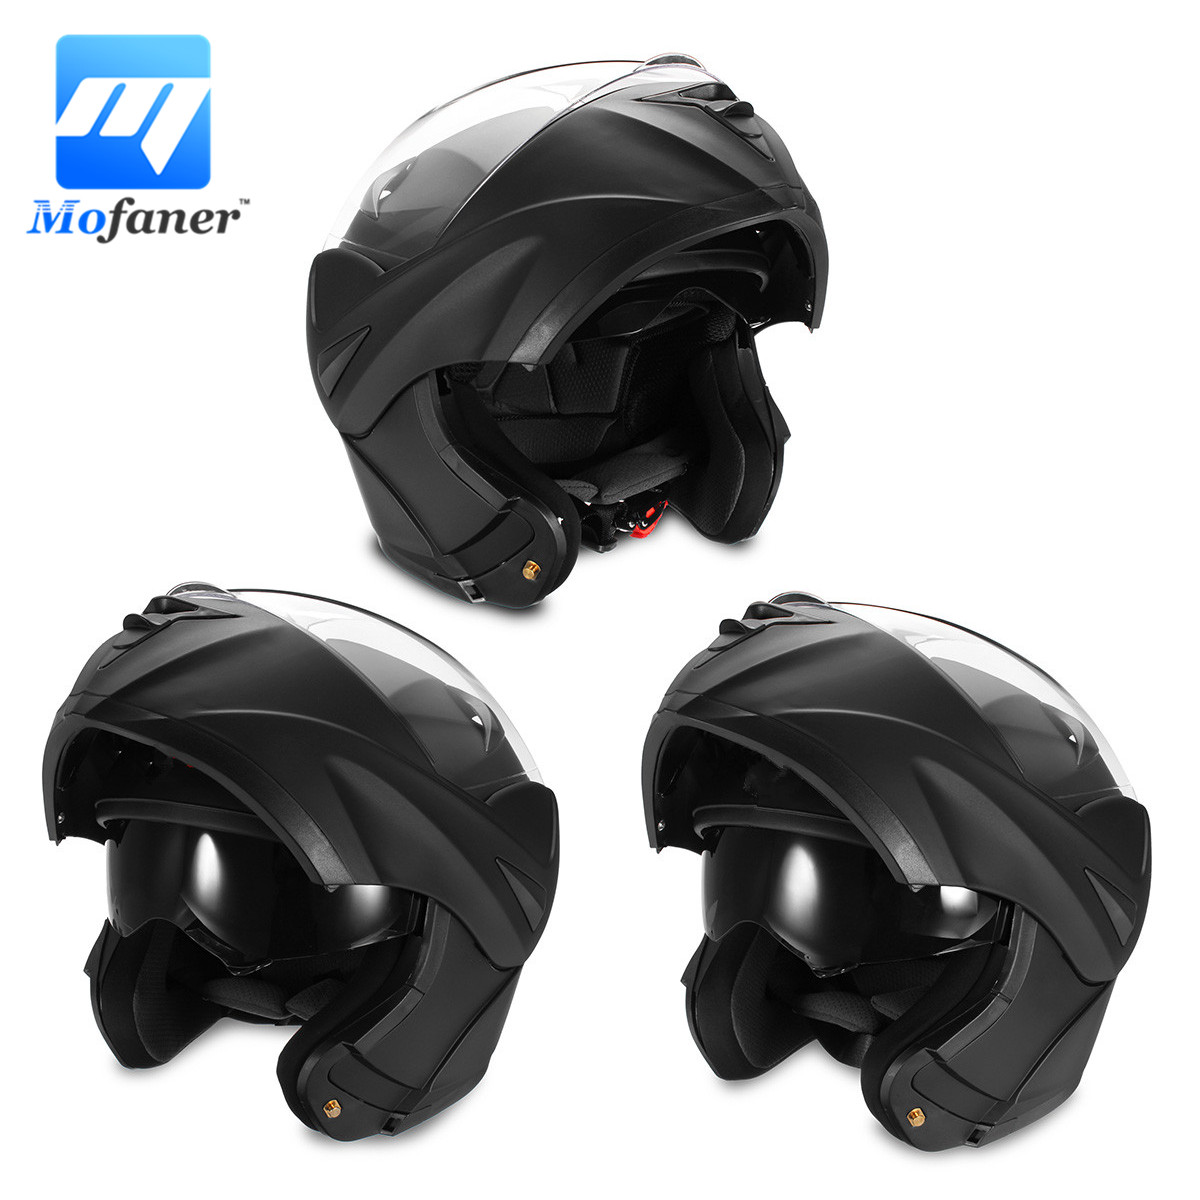 Mofaner 1Piece Motorcycle Modular Helmet Full Face Open Double Lens Dual Visor Safety Motocross Helmets 2017 new yohe full face motorcycle helmet yh 993 full cover motorbike helmets made of abs and pc visor lens have 5 kinds colors